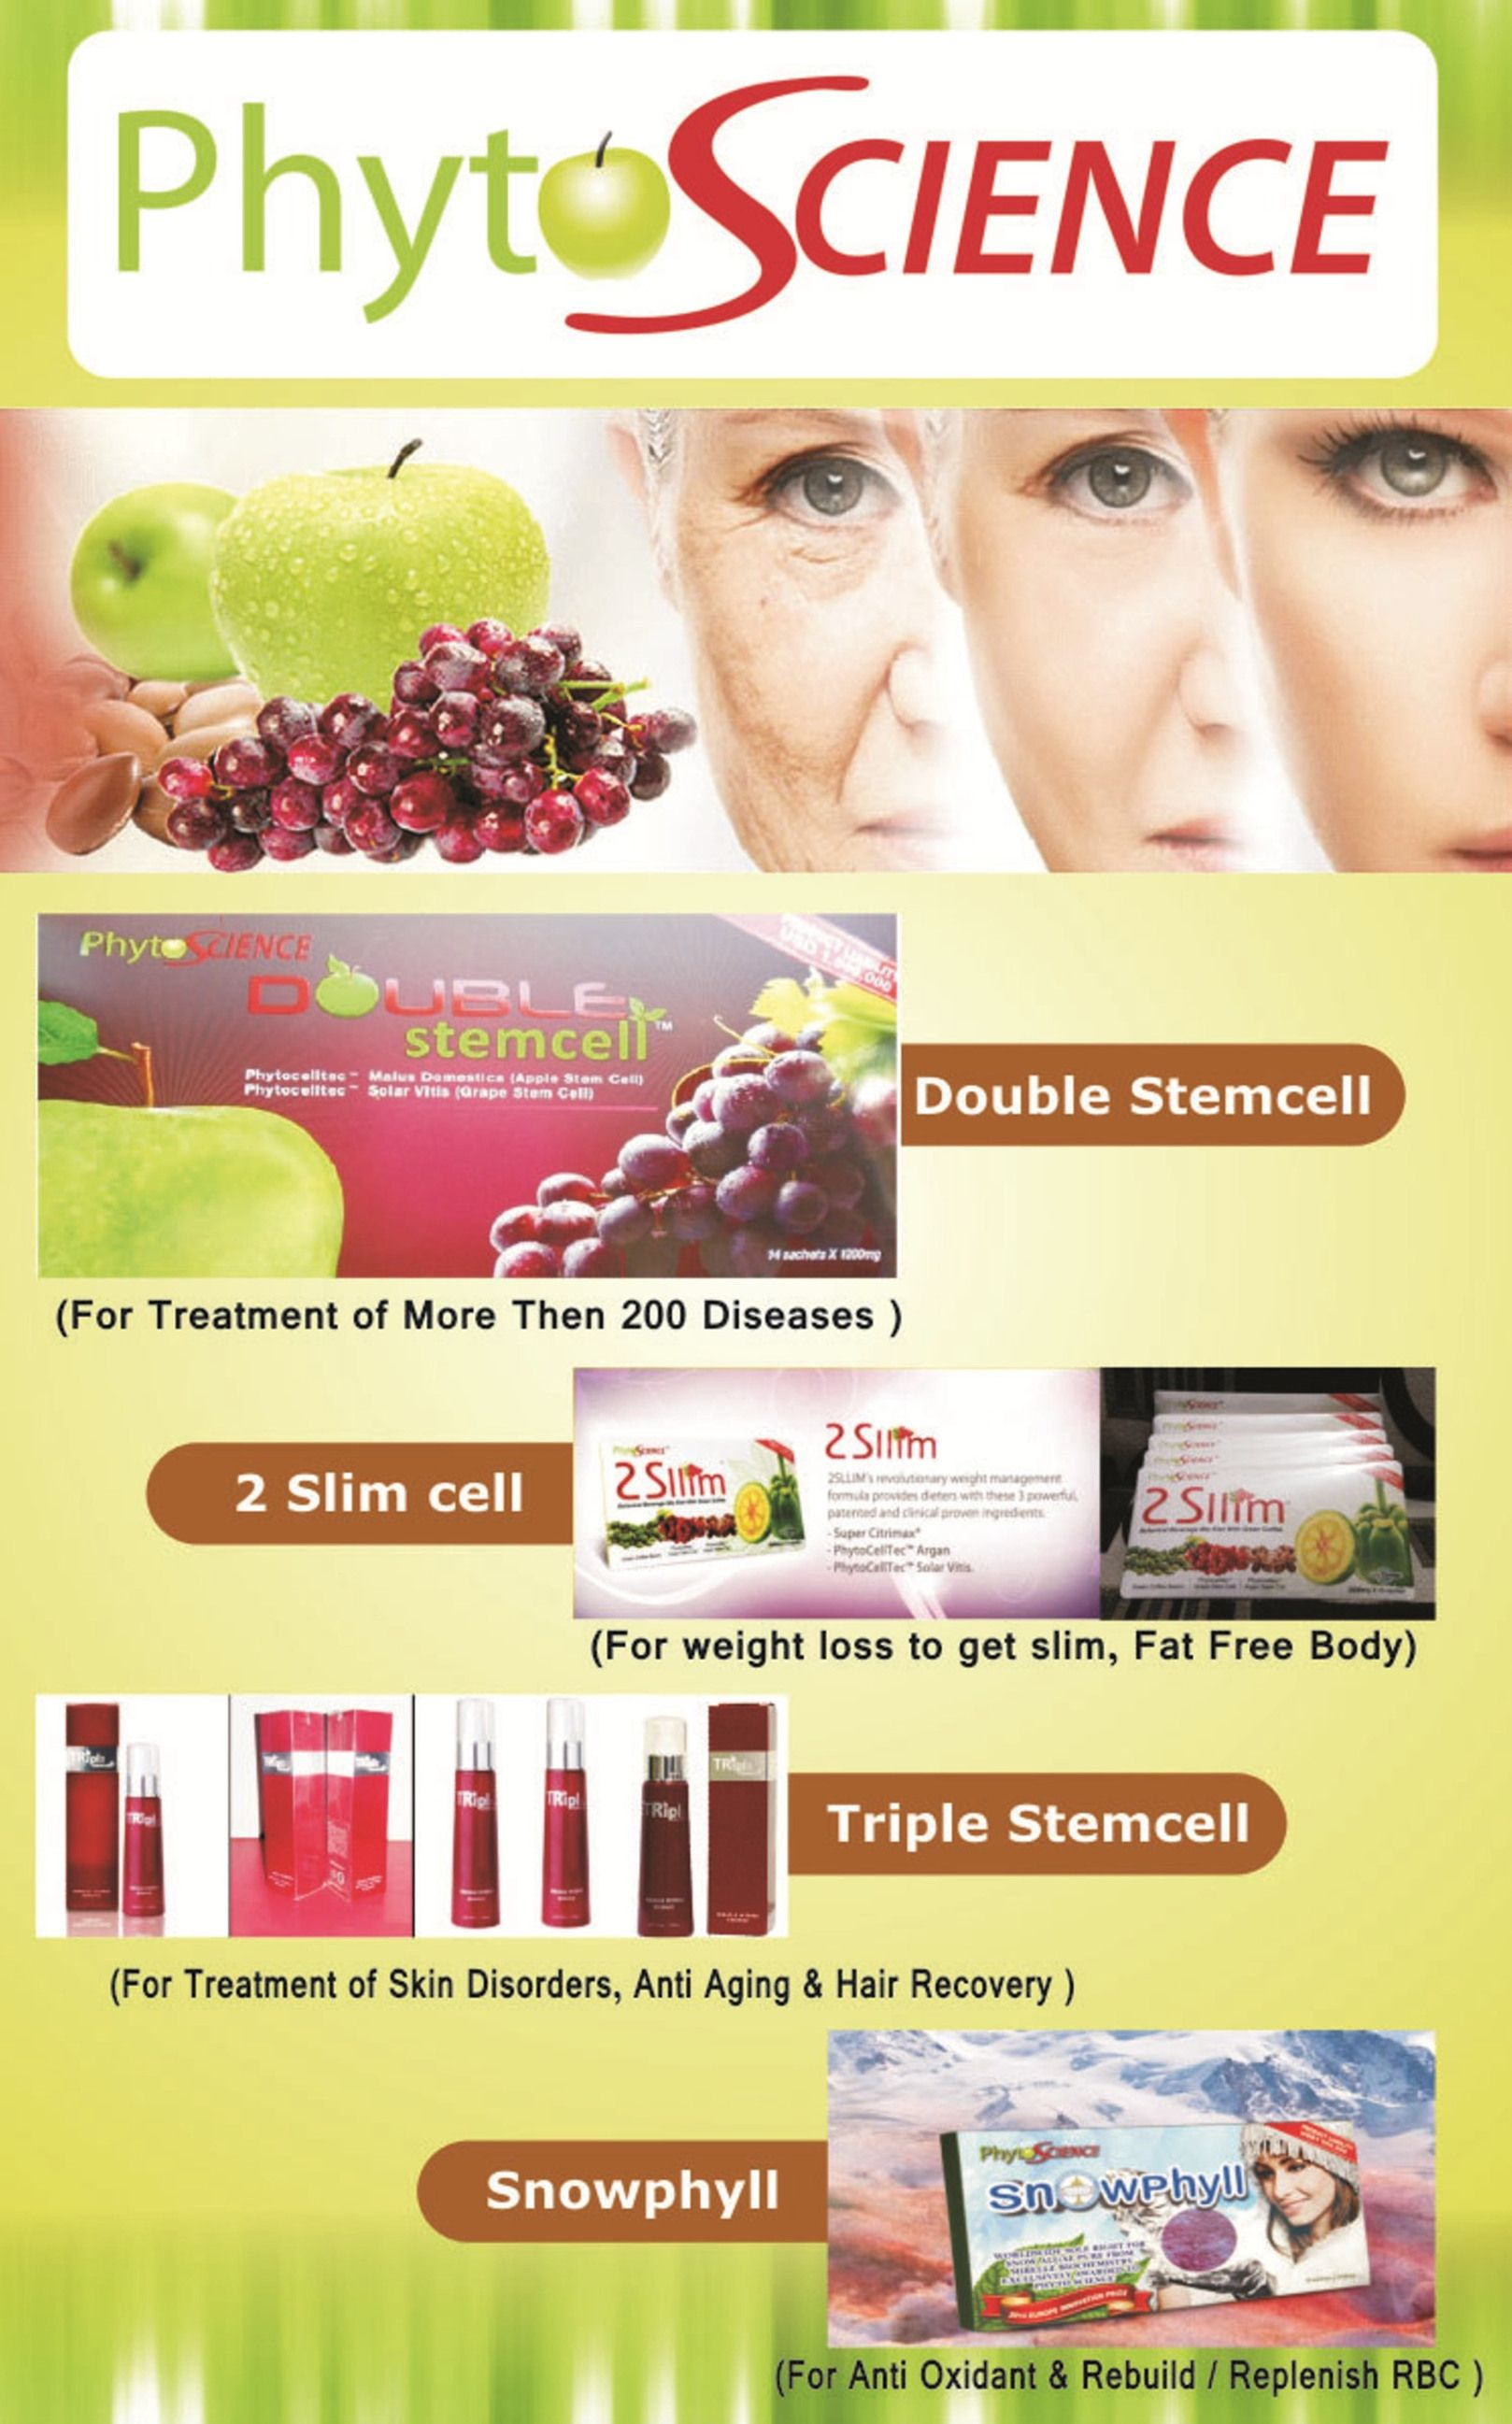 phytoscience double stemcell business plan